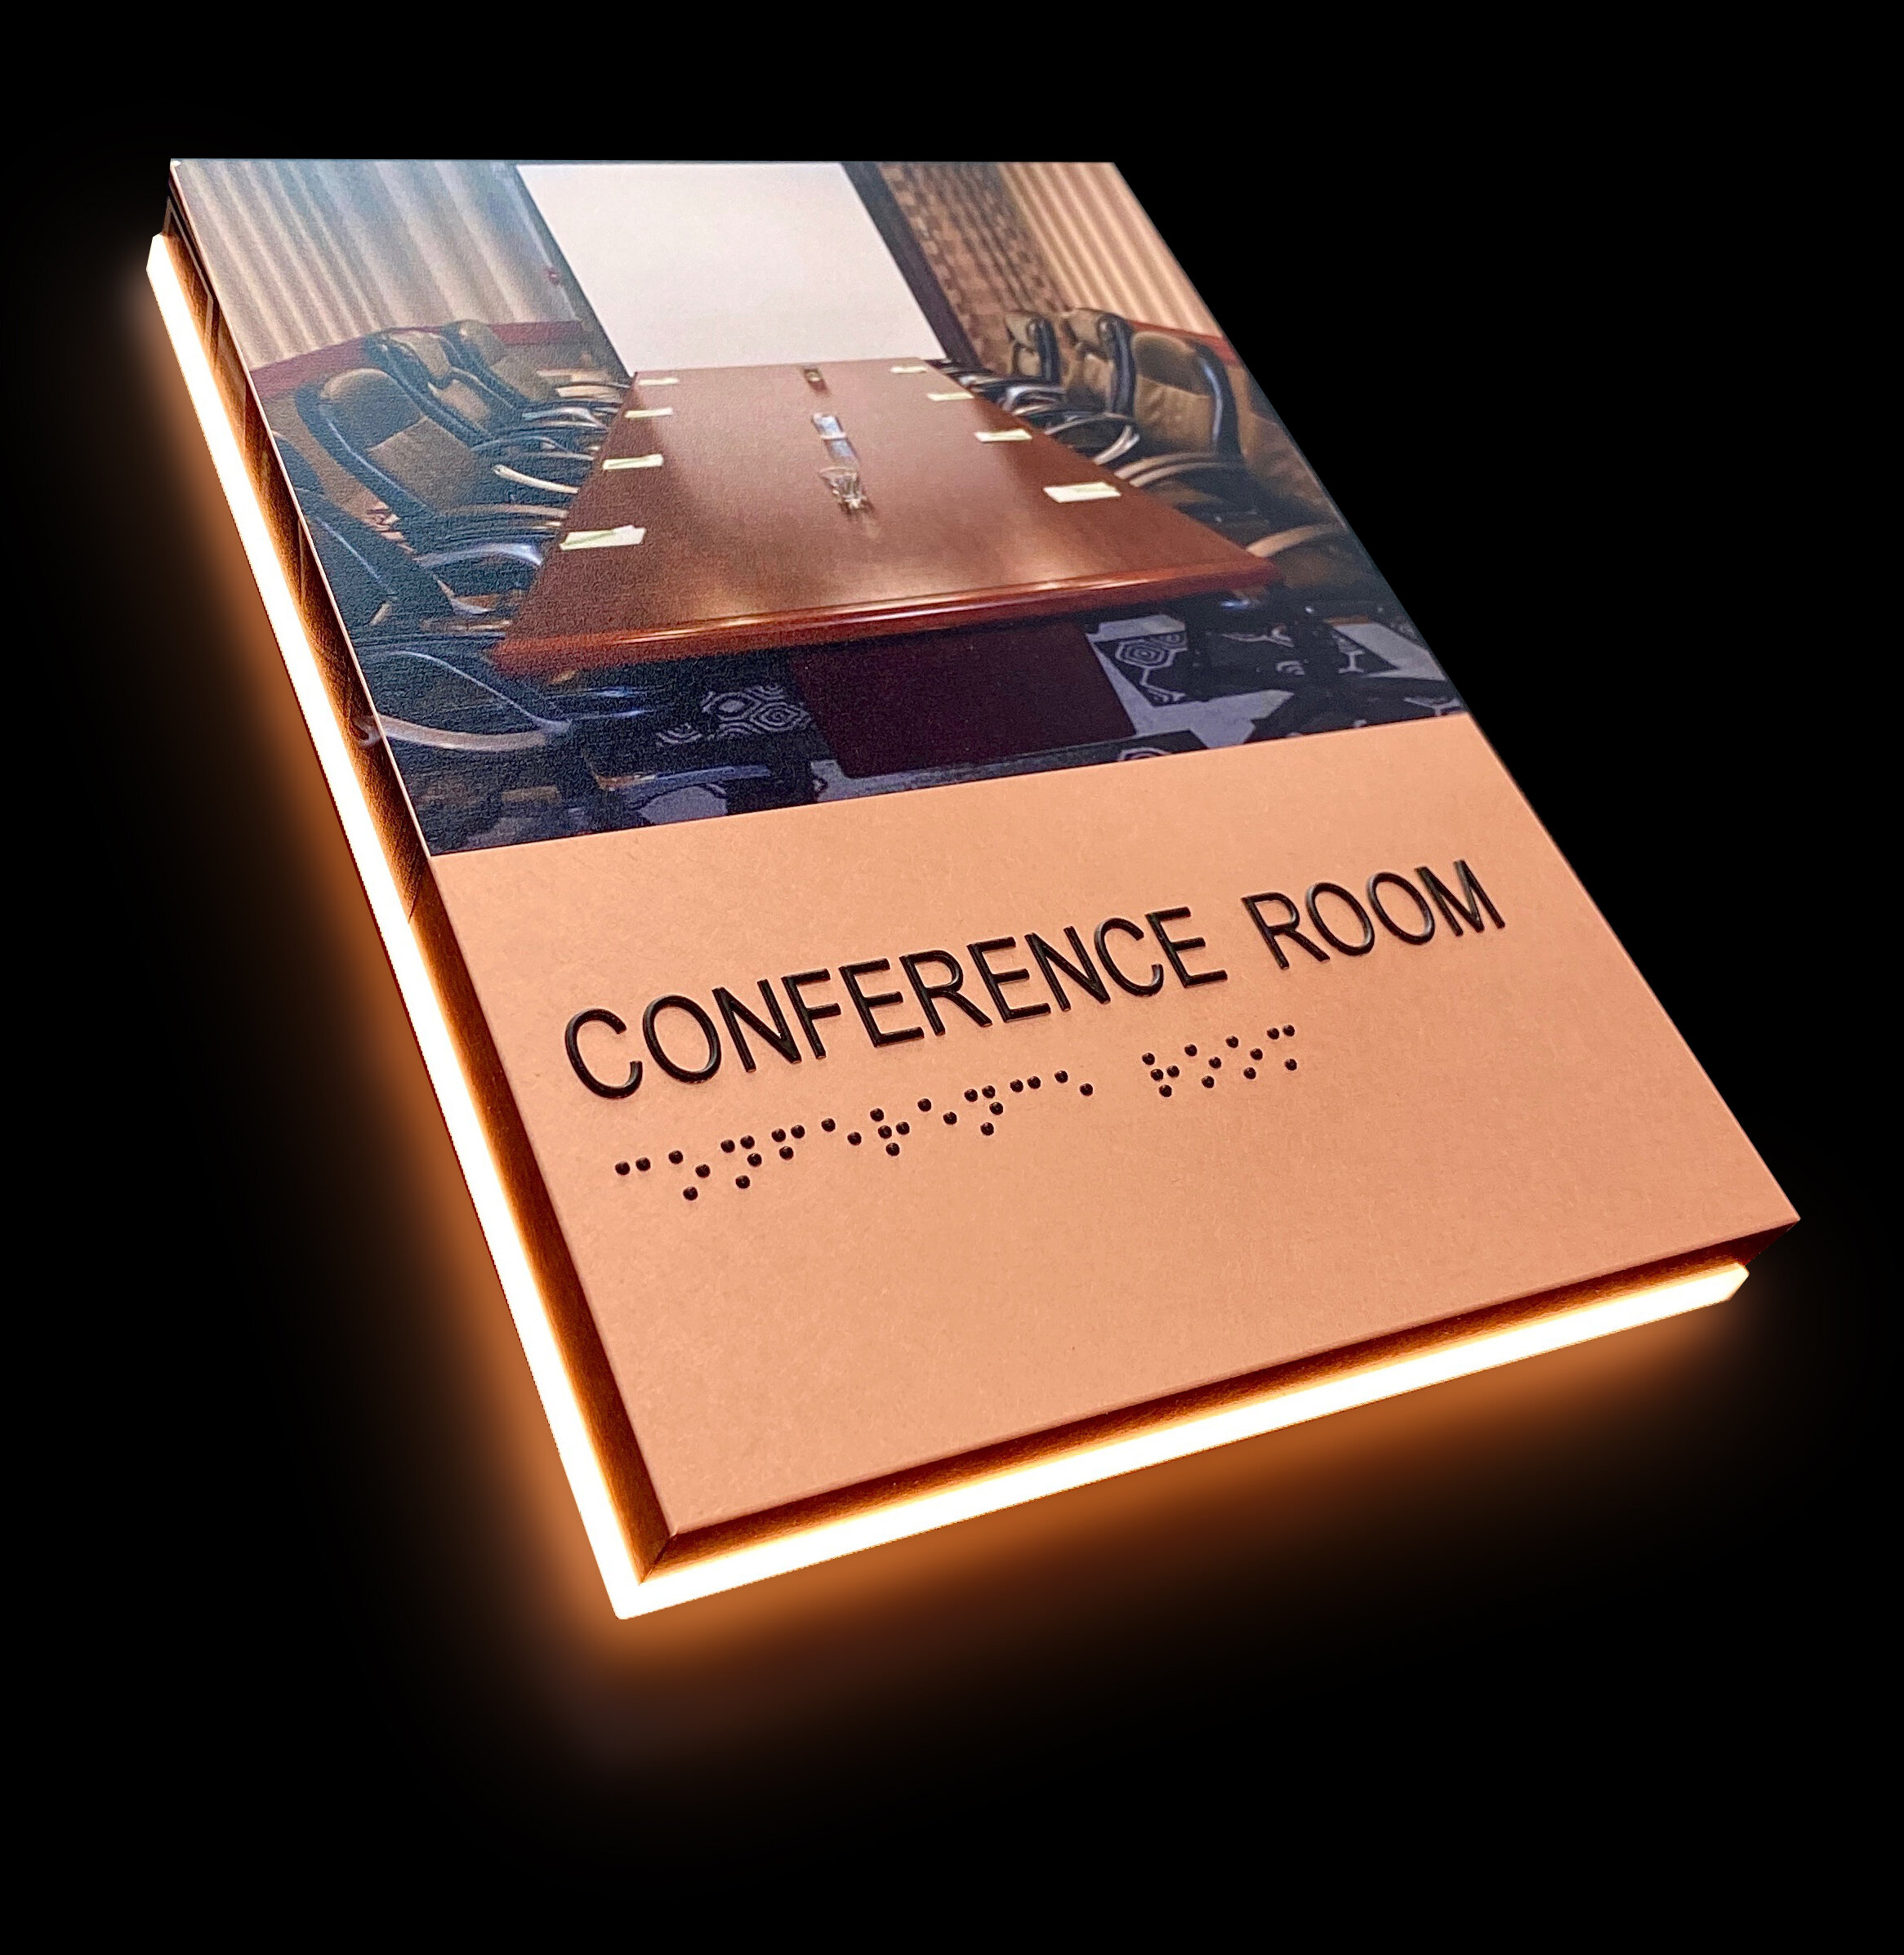 conference room image wrap.jpg